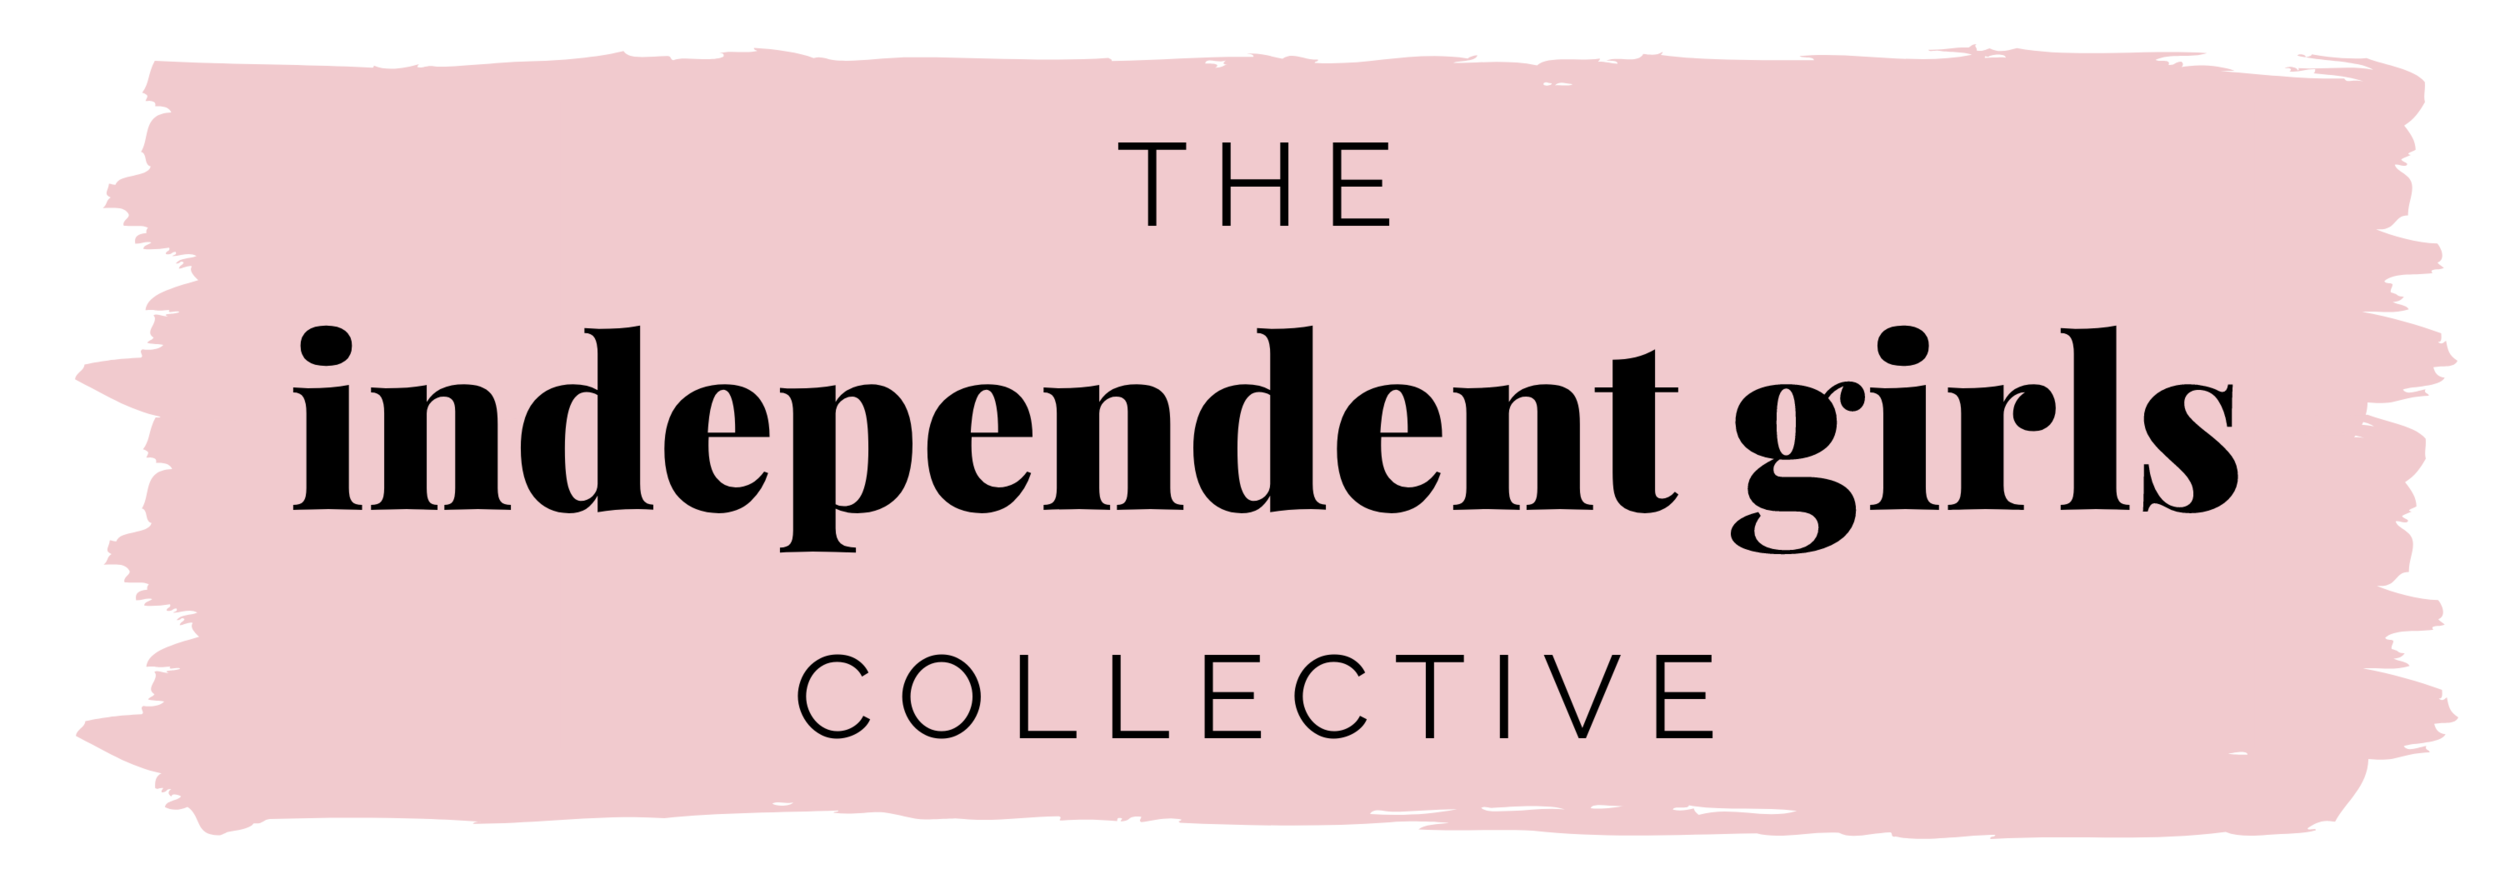 The Independent Girls Collective | courses resources community for creative female entrepreneurs-financial business coaching-grow business success